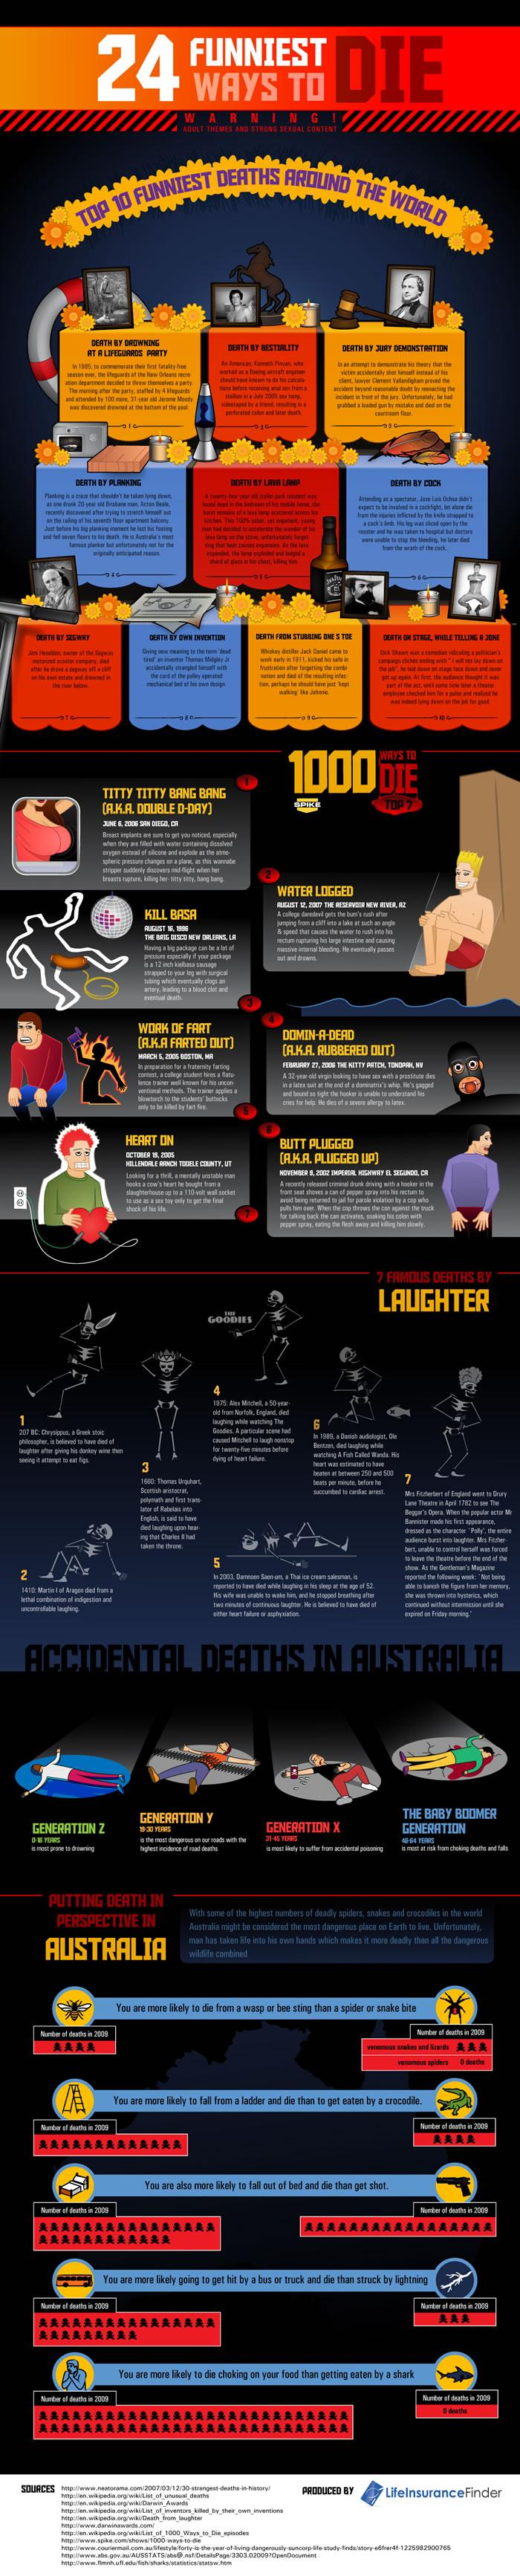 Funniest-deaths-Infographic